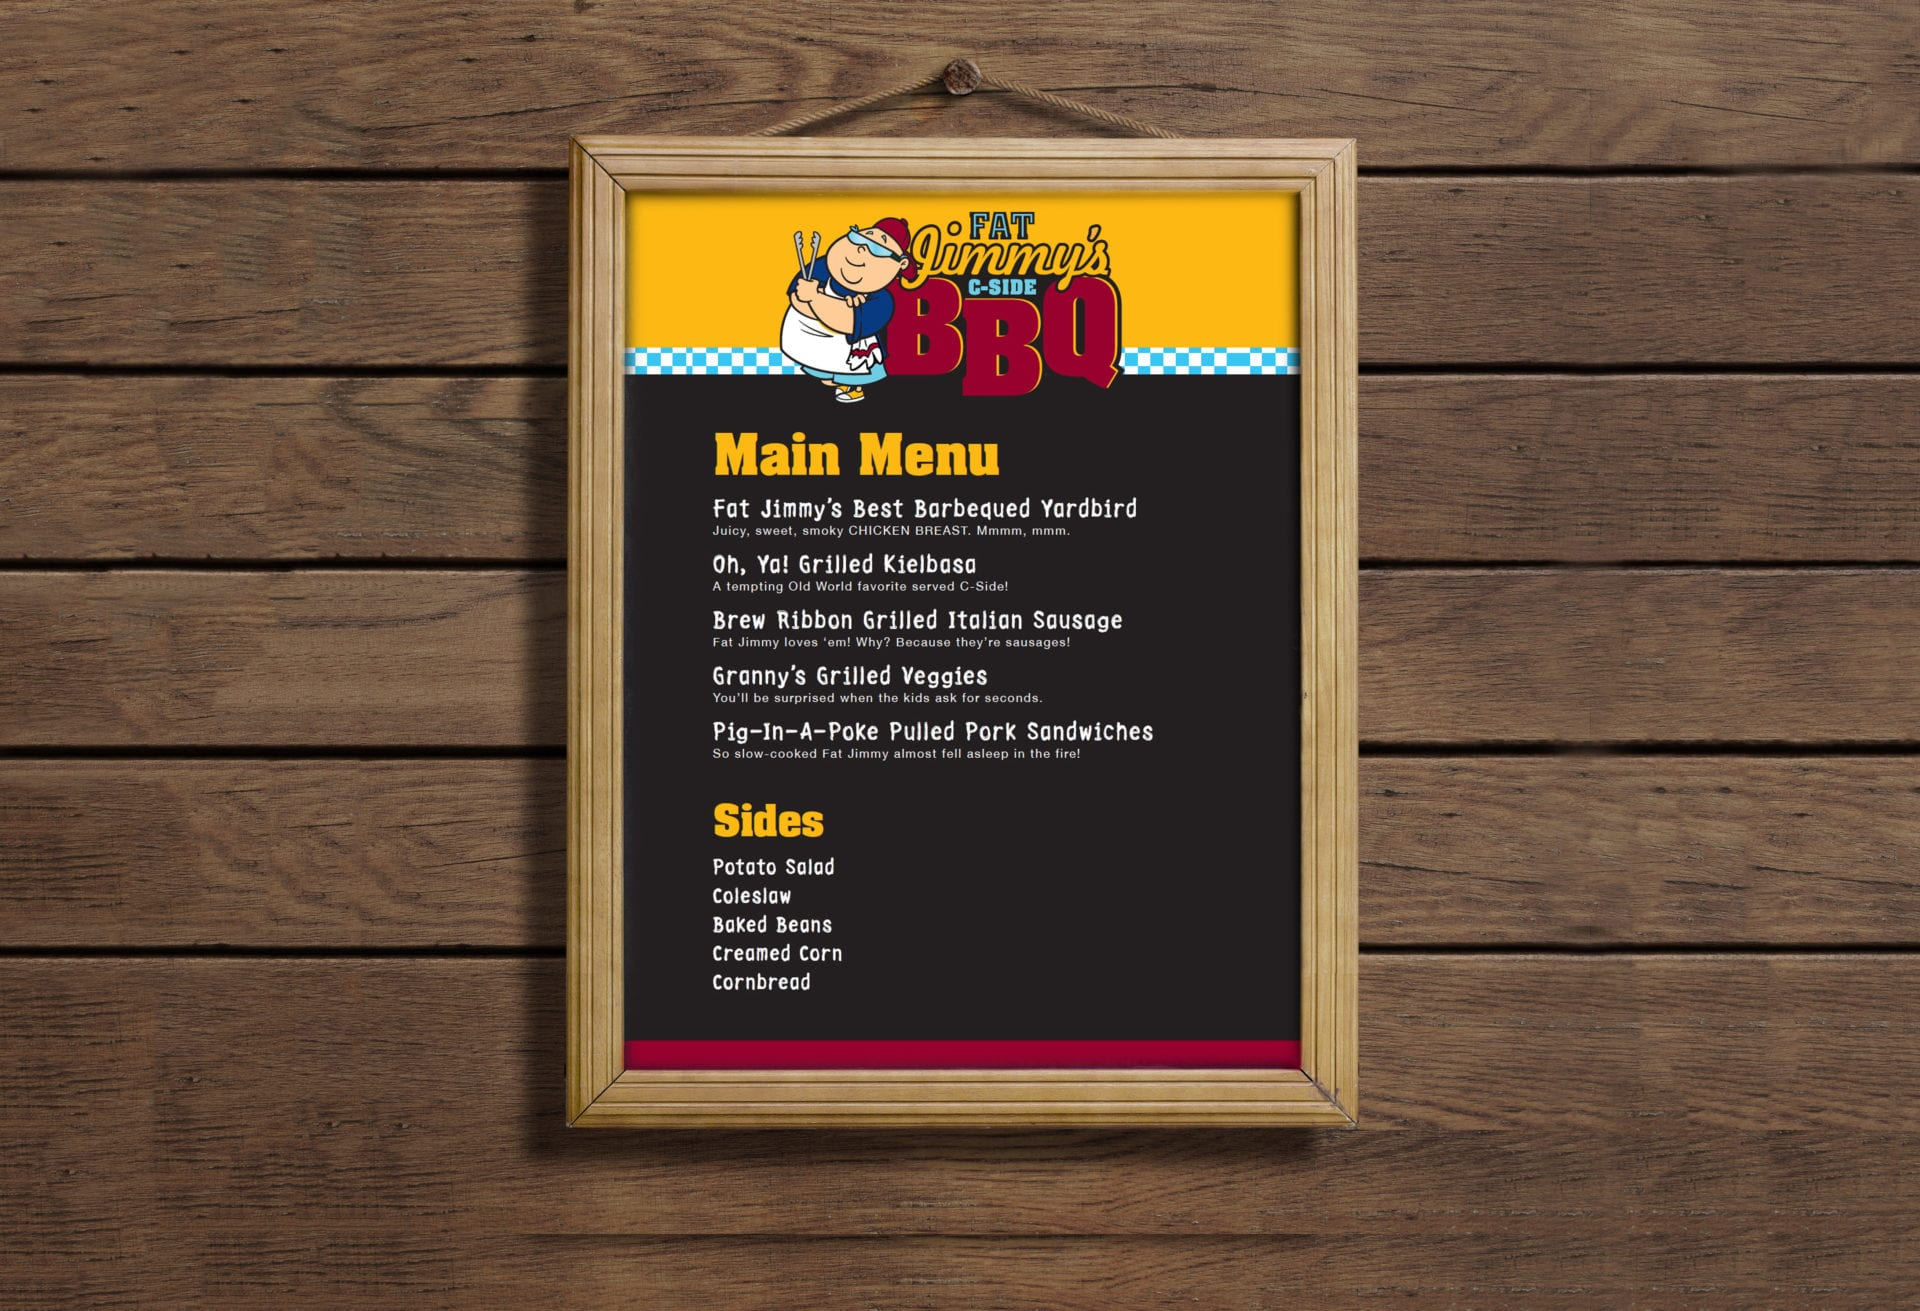 The menu design of Fat Jimmy's C-Side BBQ on the Carnival Cruise Line